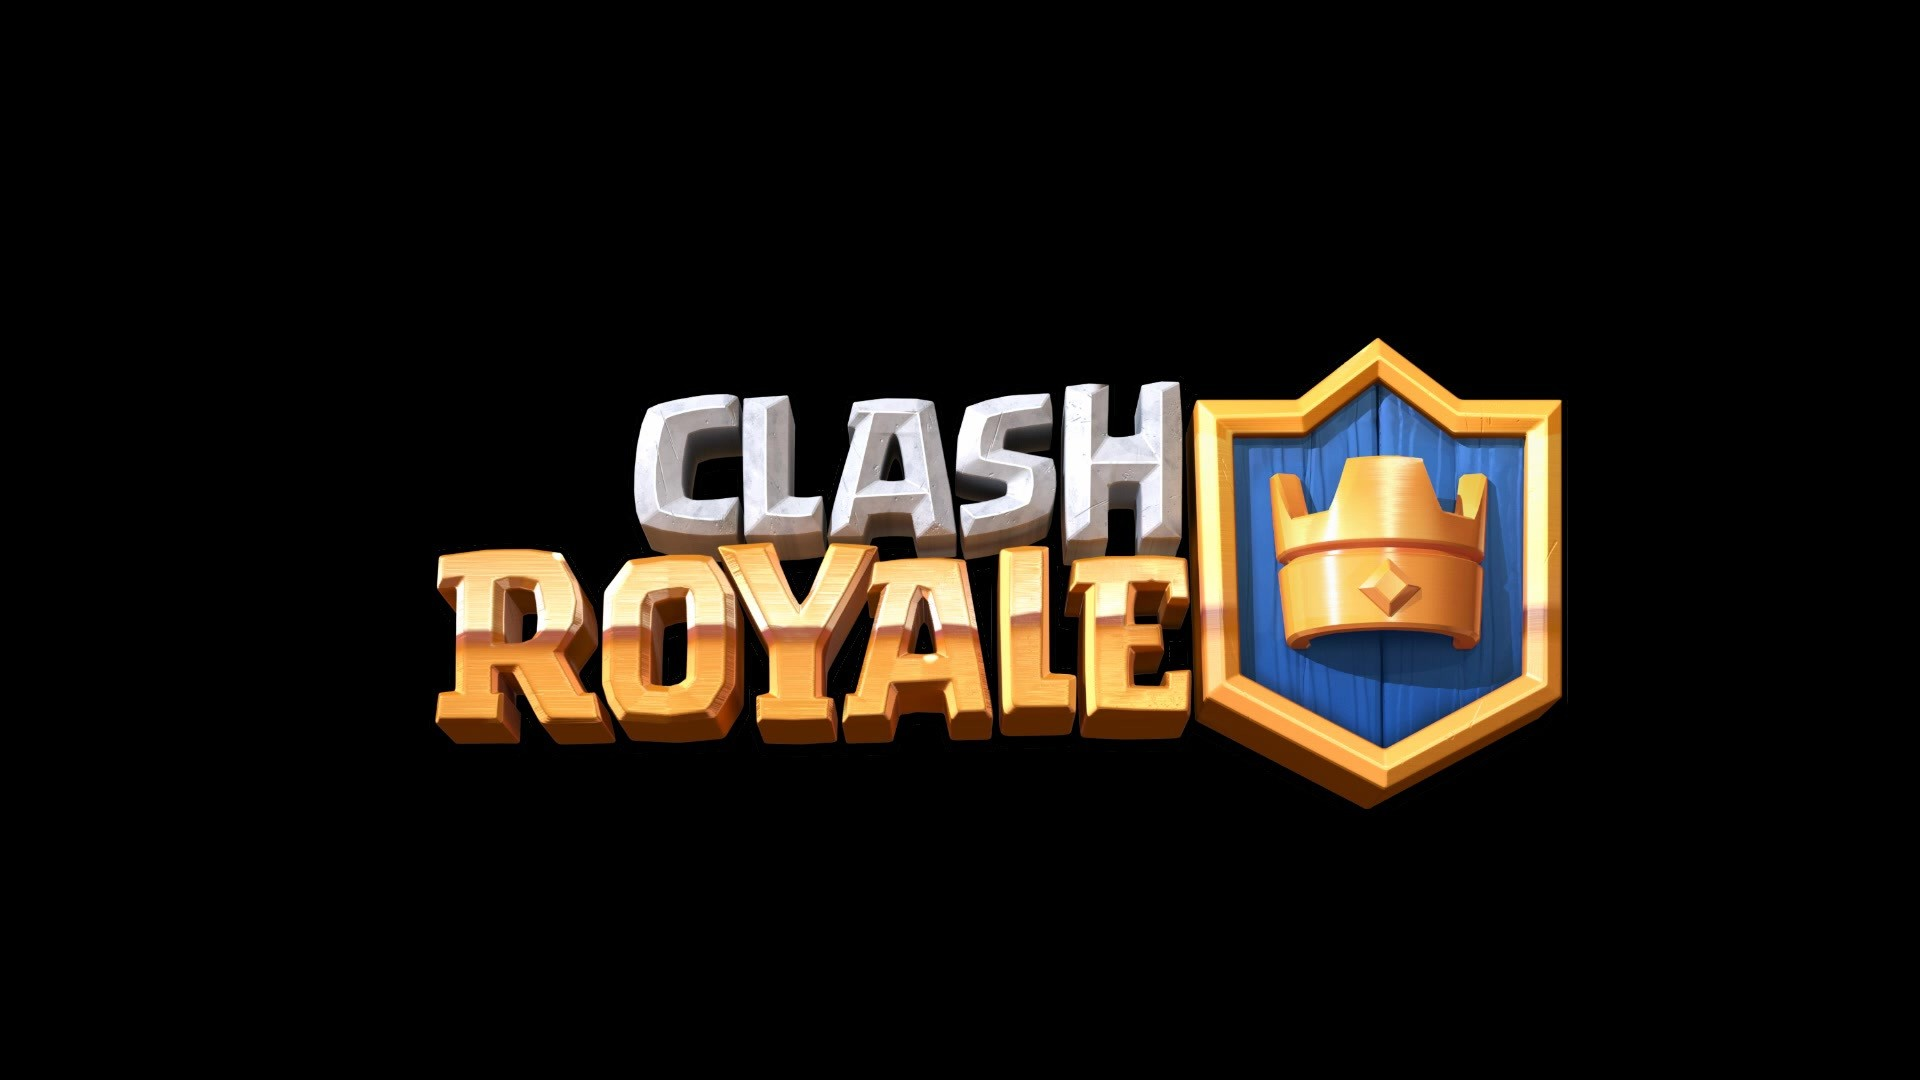 1920x1080 Computerspiele - Clash Royale Wallpaper